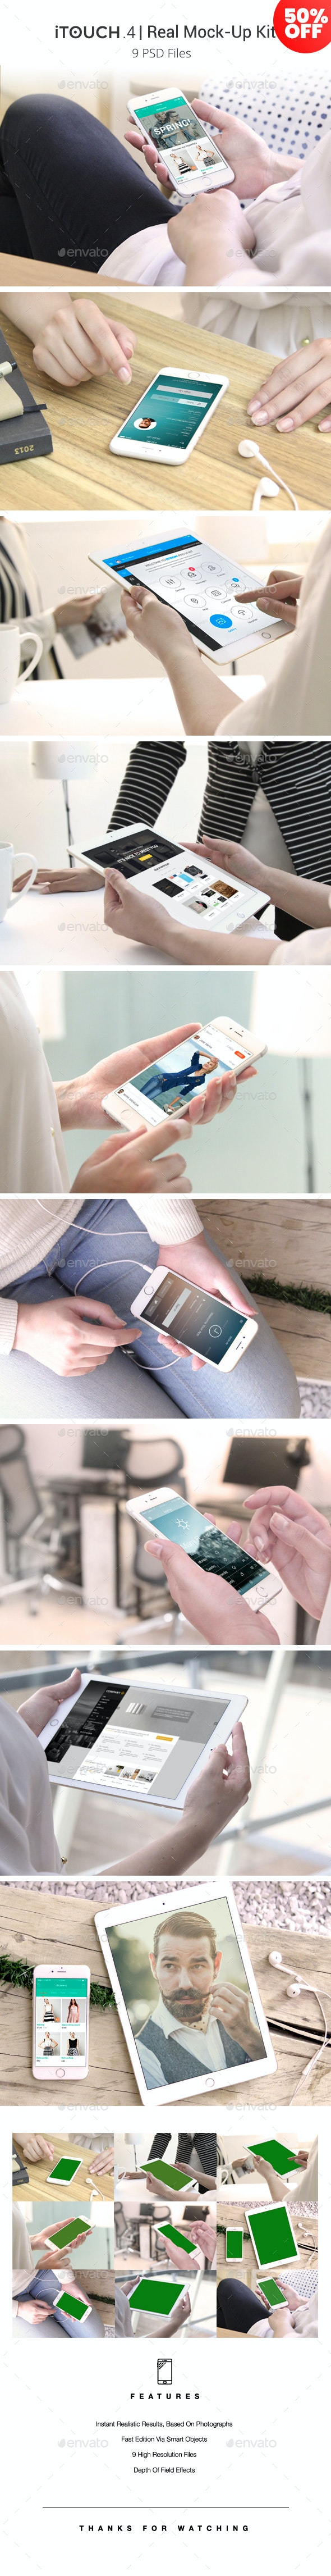 iTouch 4 | 09 Photorealistic MockUp - Mobile Displays